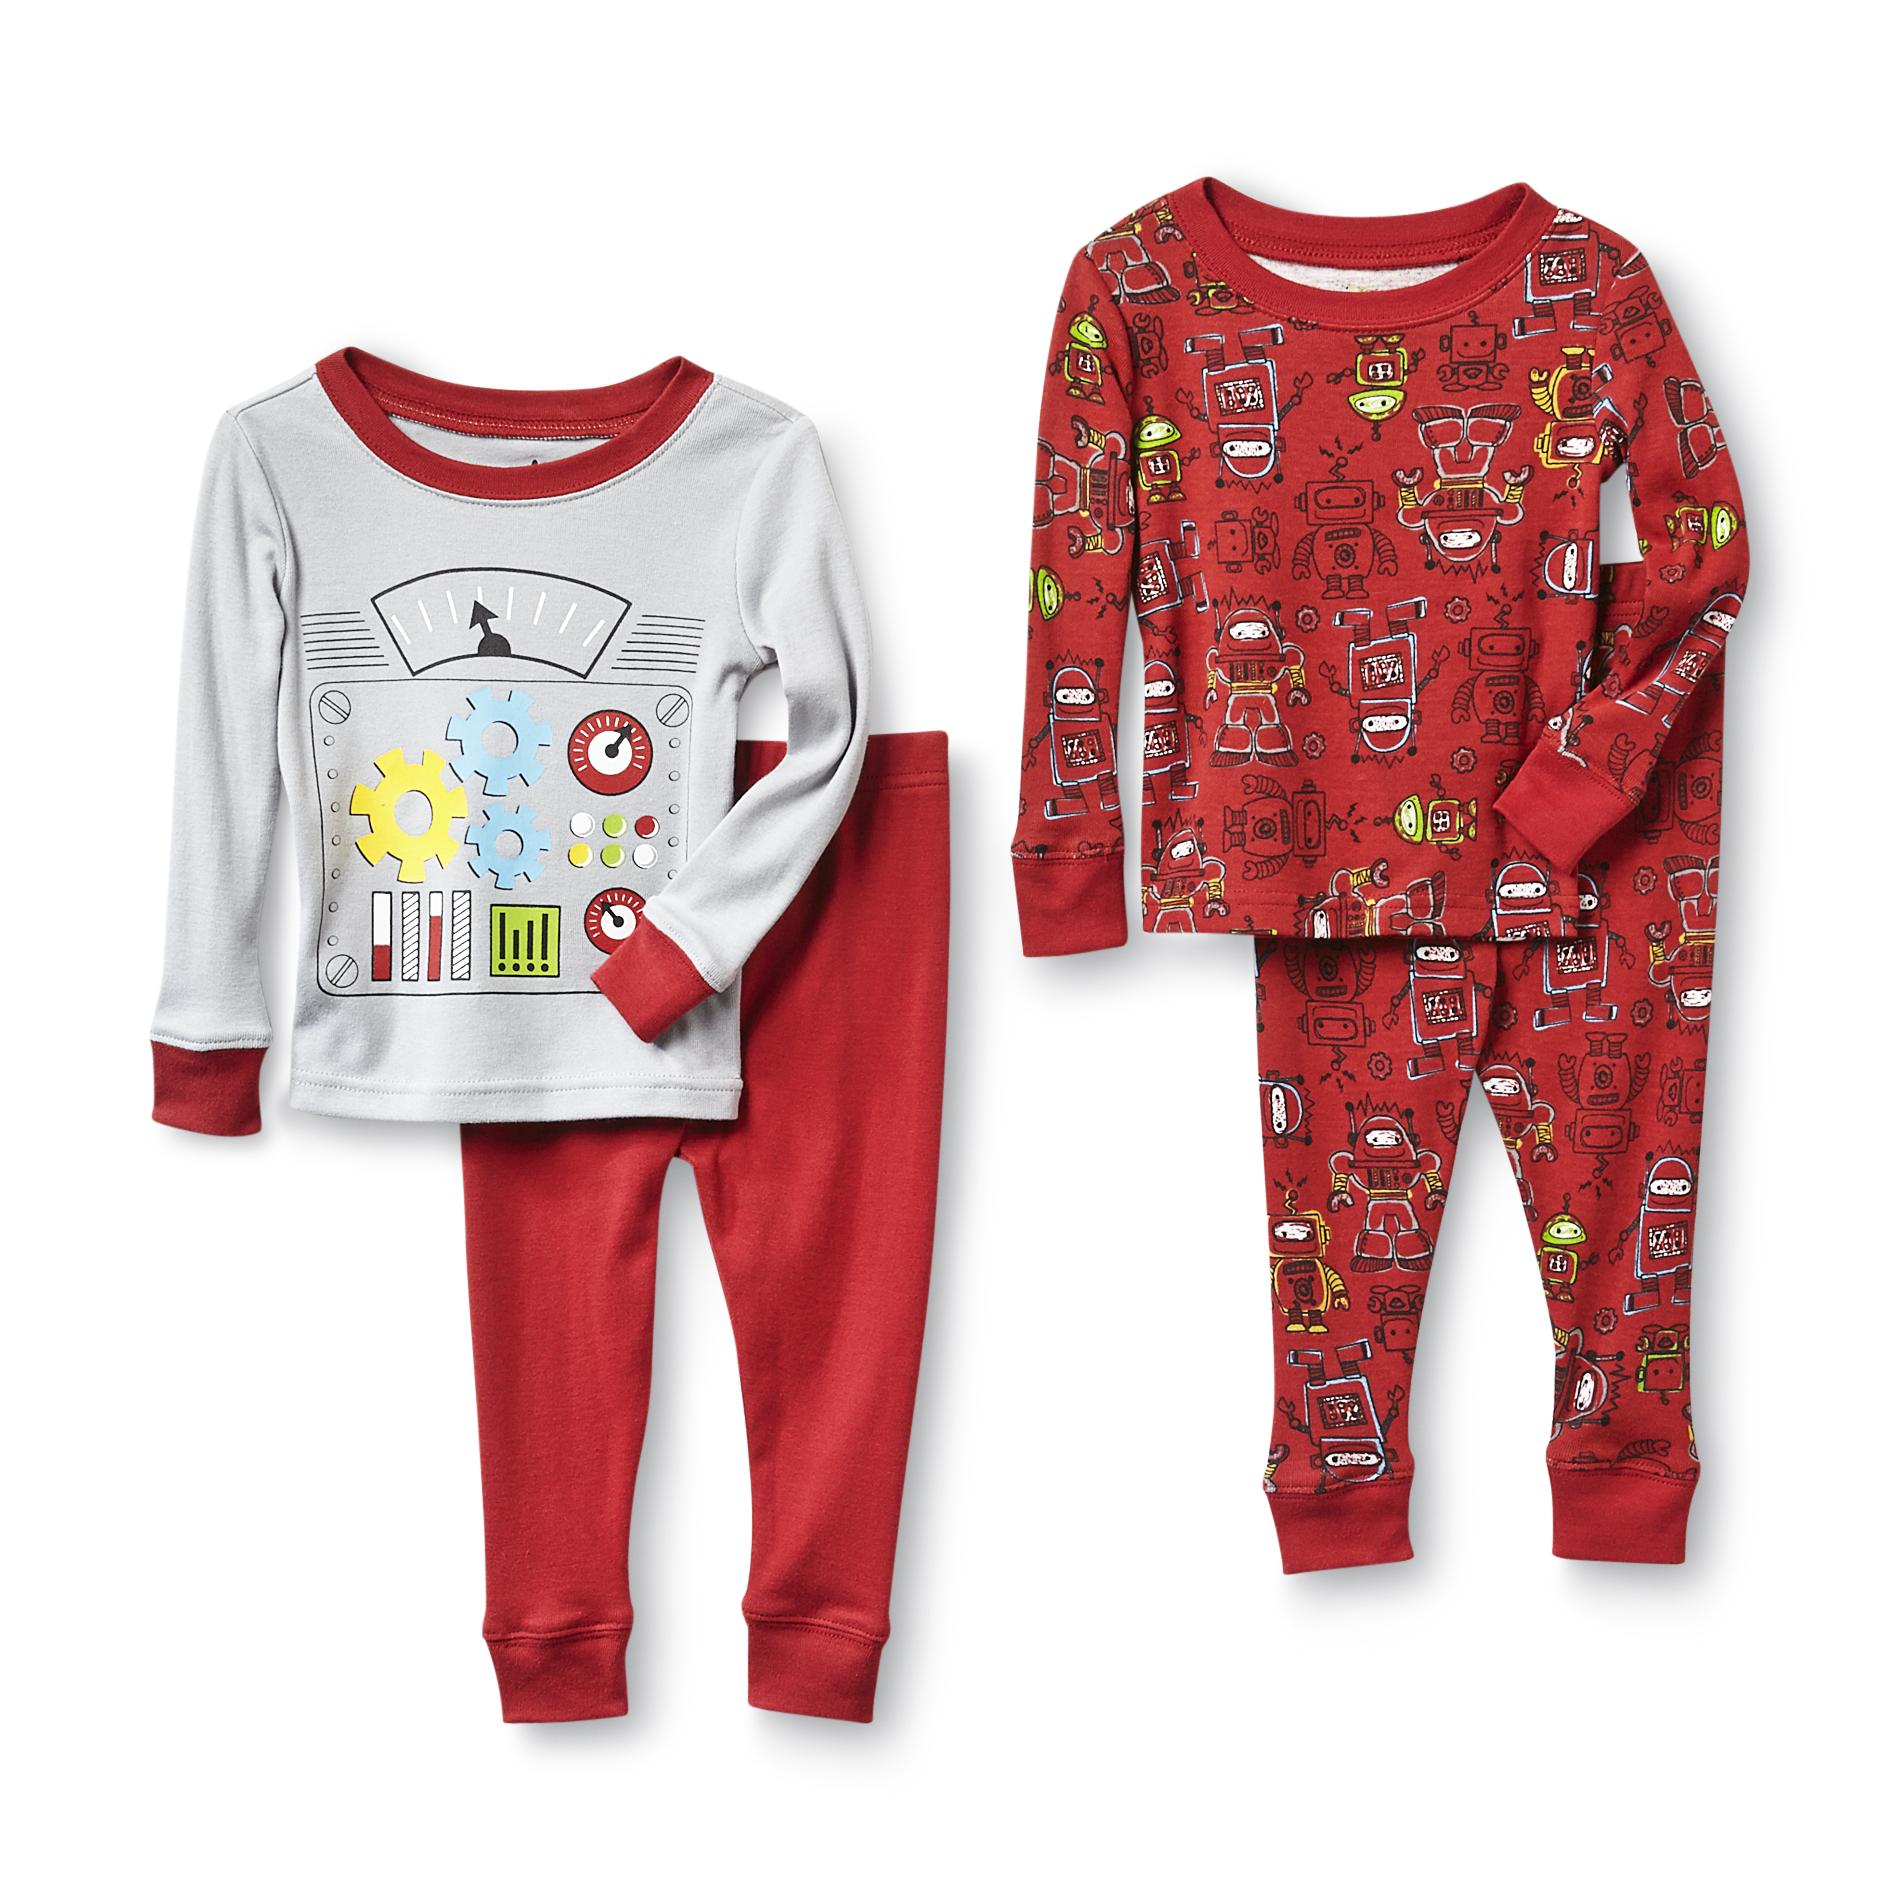 Joe Boxer  Infant & Toddler Boy's 2